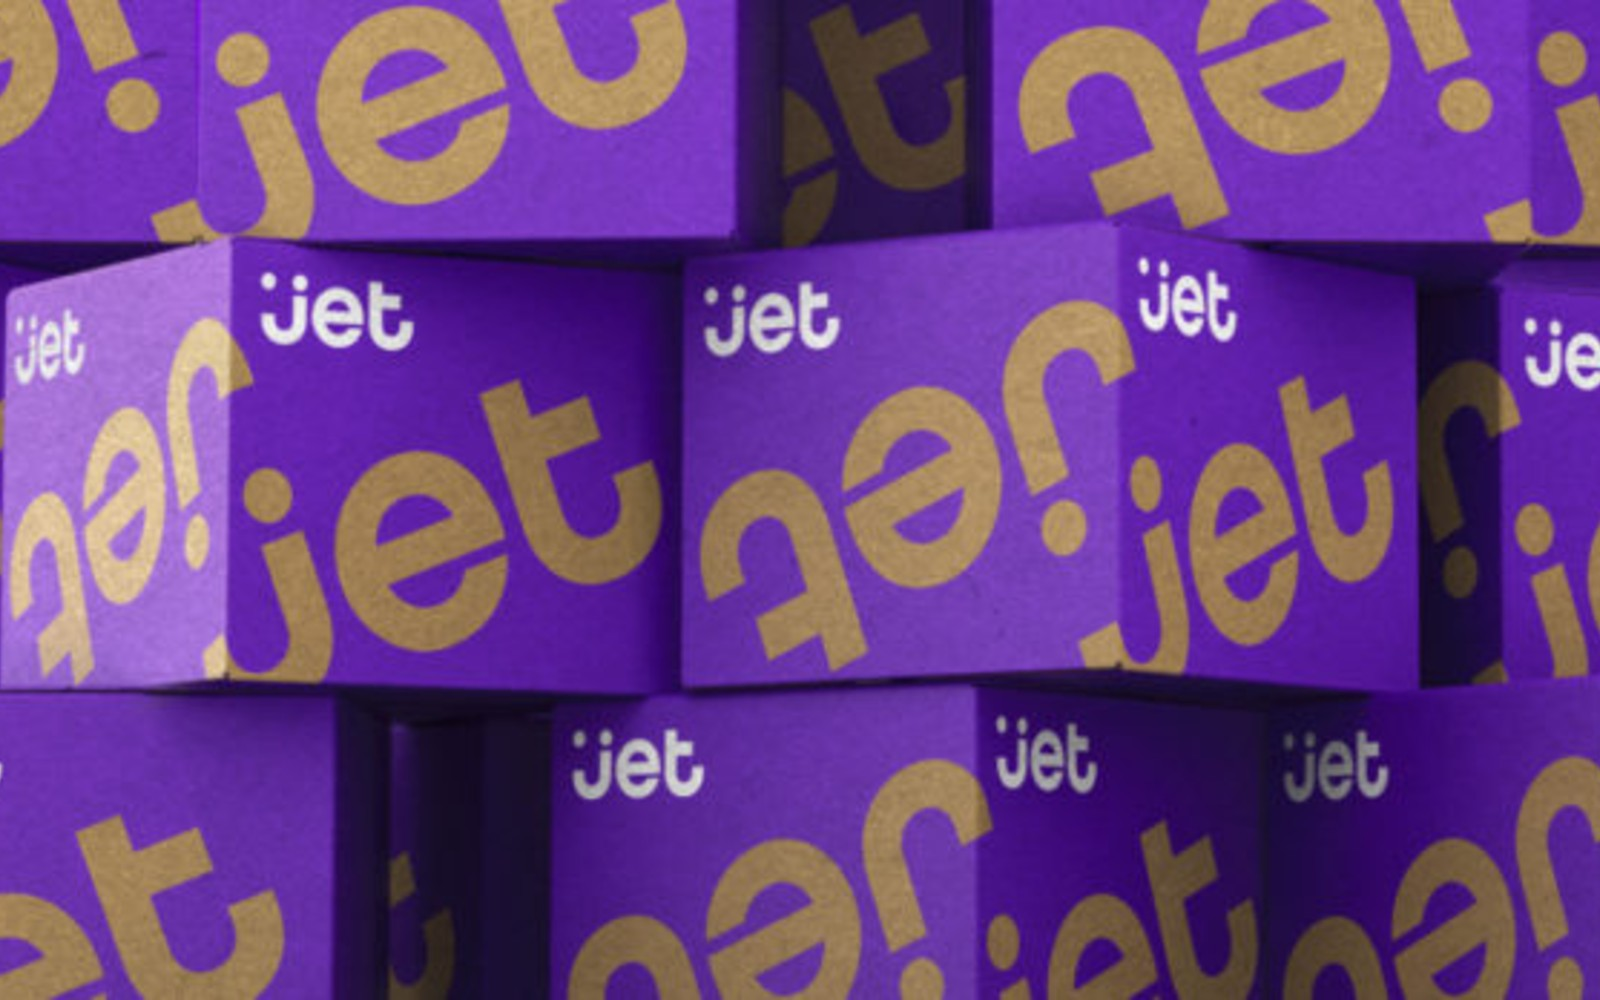 Walmart is shutting down Jet